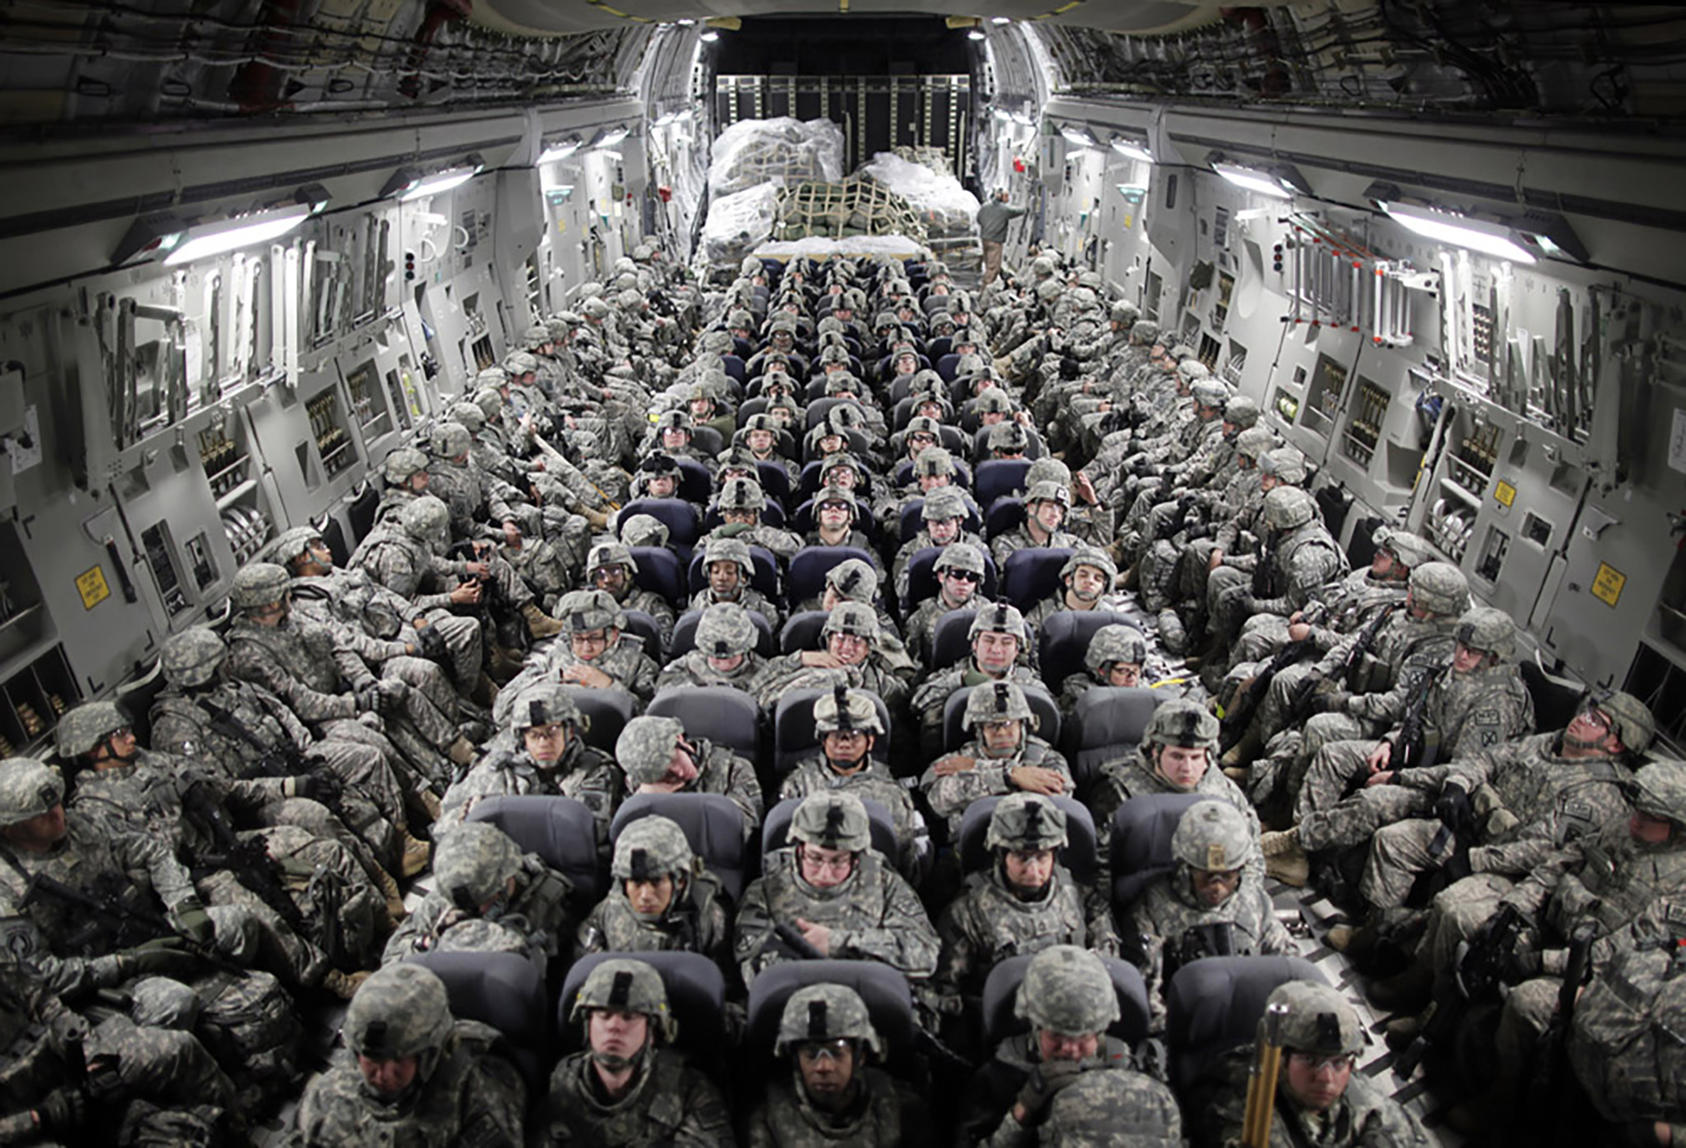 American soldiers on a transport plane that is about to land in Mazar-i-Sharif, in northern Afghanistan, April 5, 2010. (Damon Winter/The New York Times)